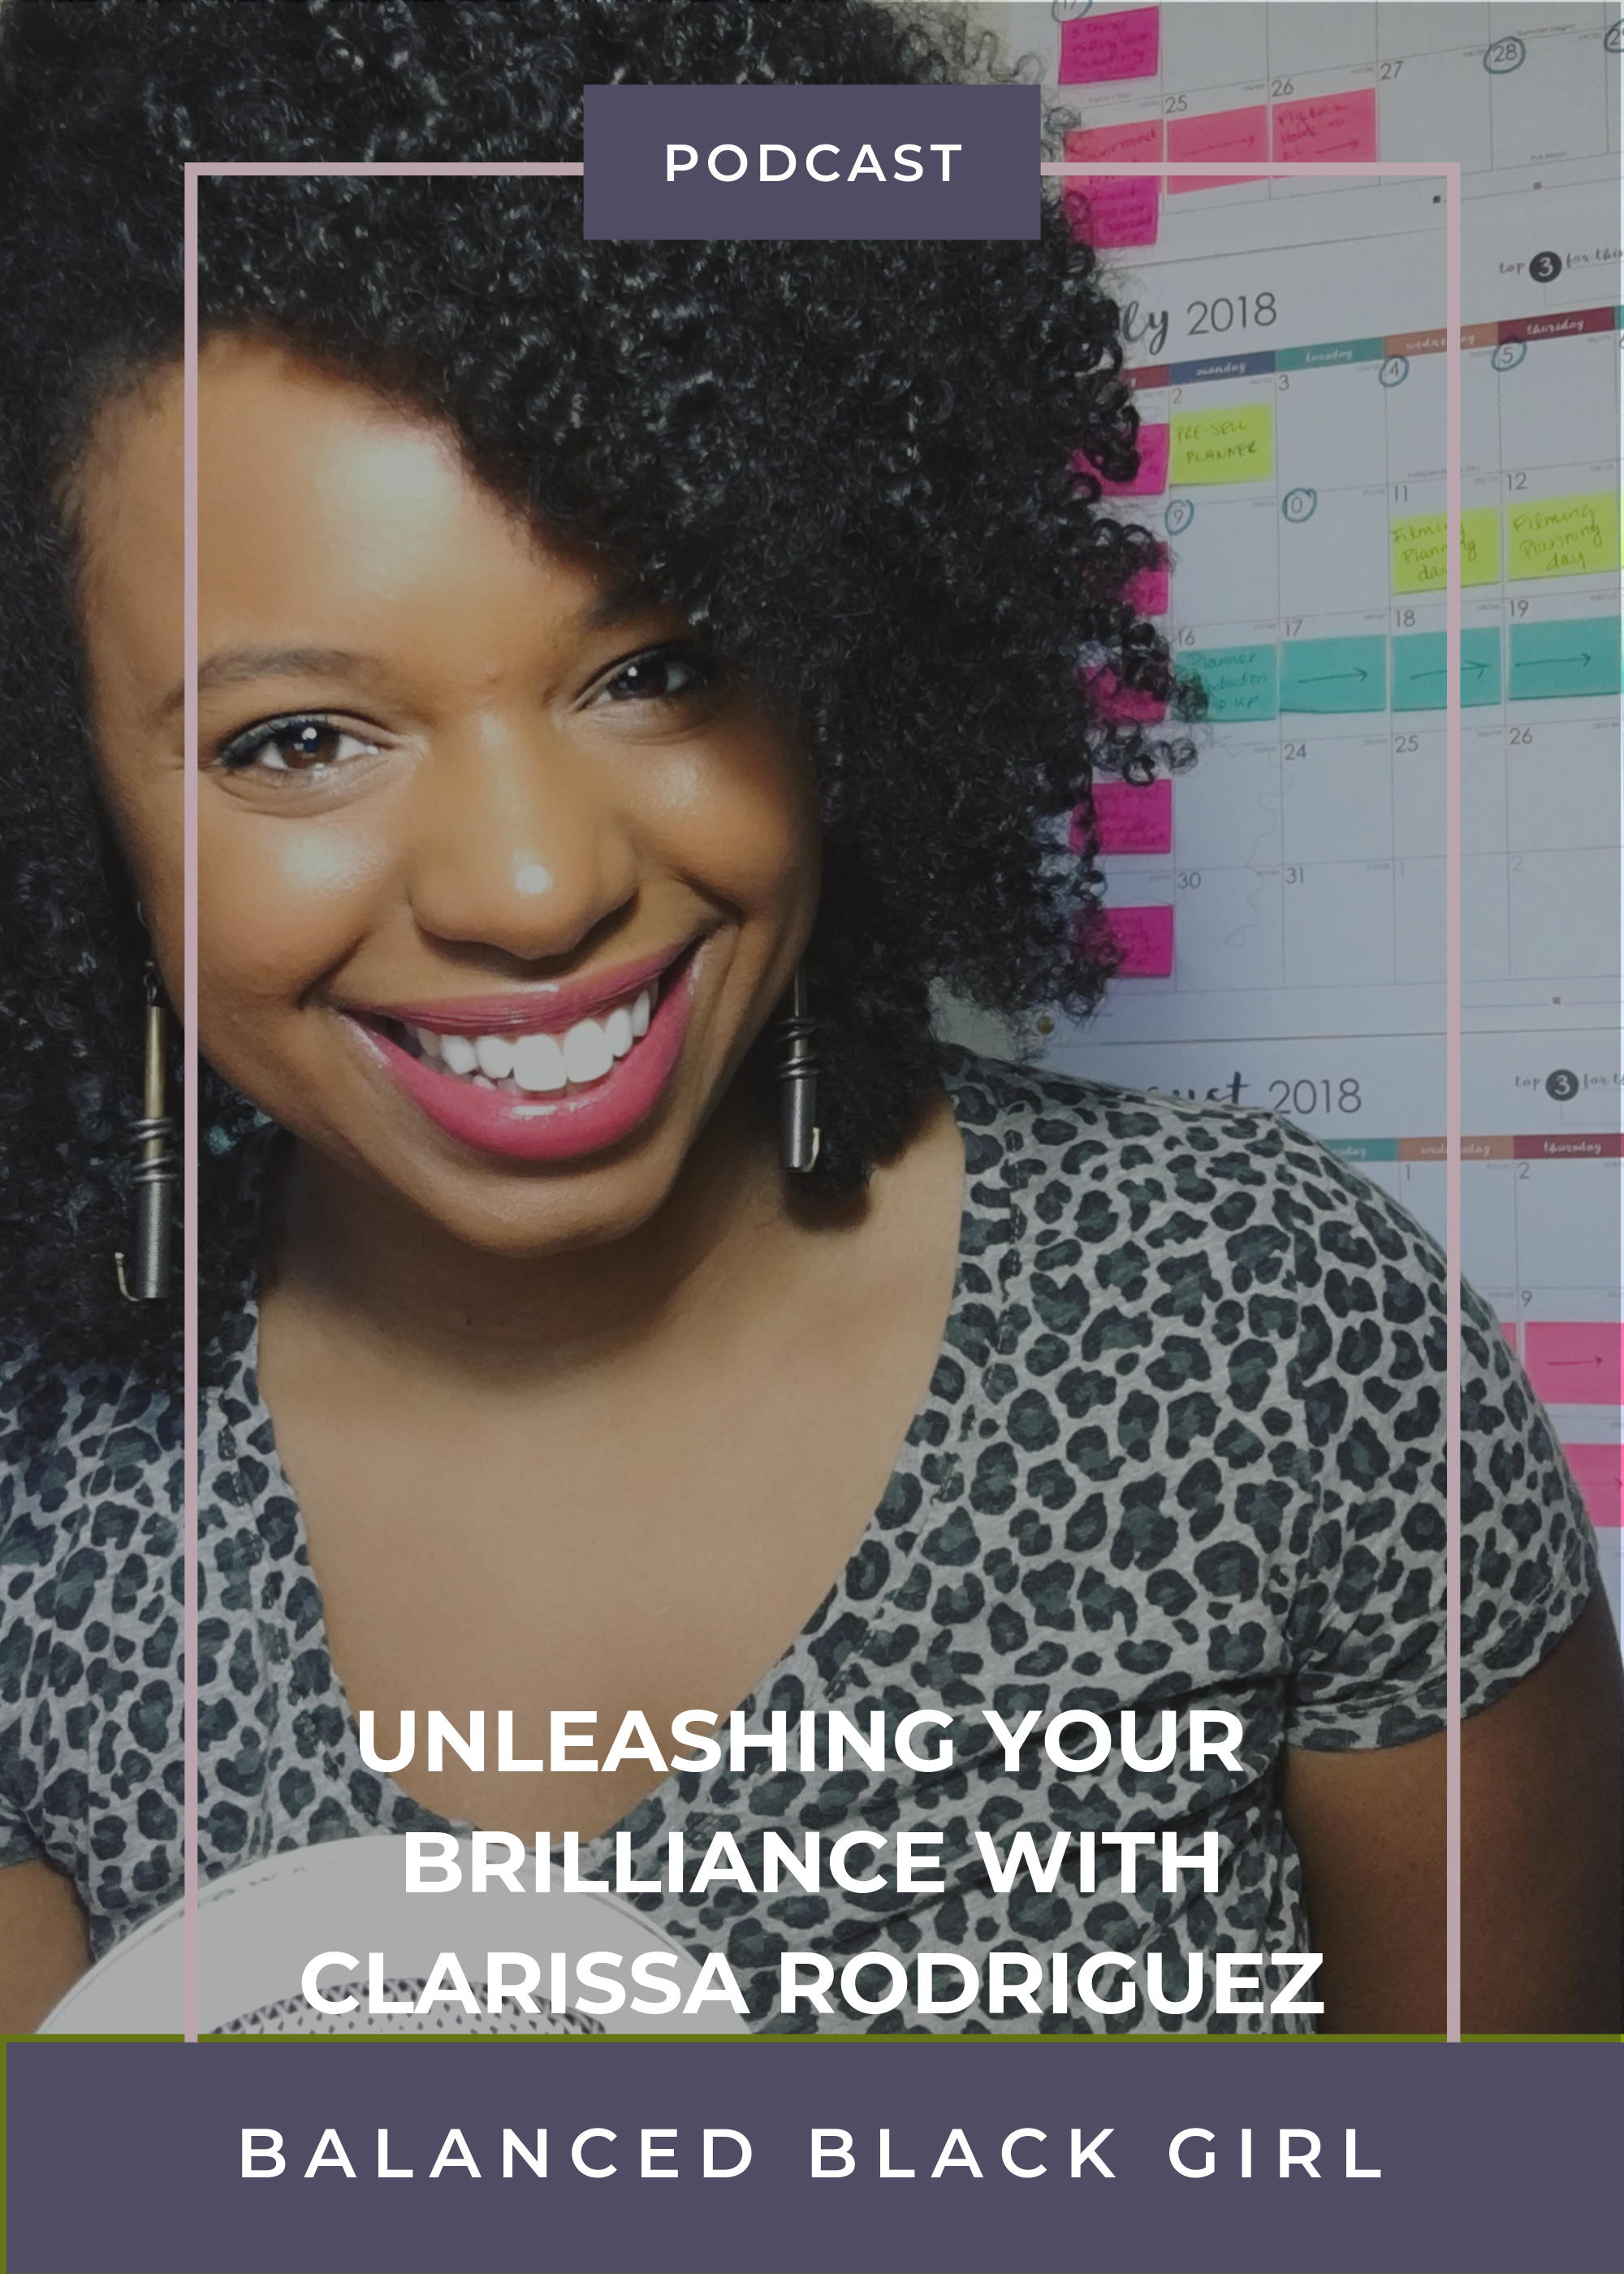 Clarissa Rodriguez of She Rocks at College on Unleashing Your Brilliance for First Generation College Students | Balanced Black Girl Podcast